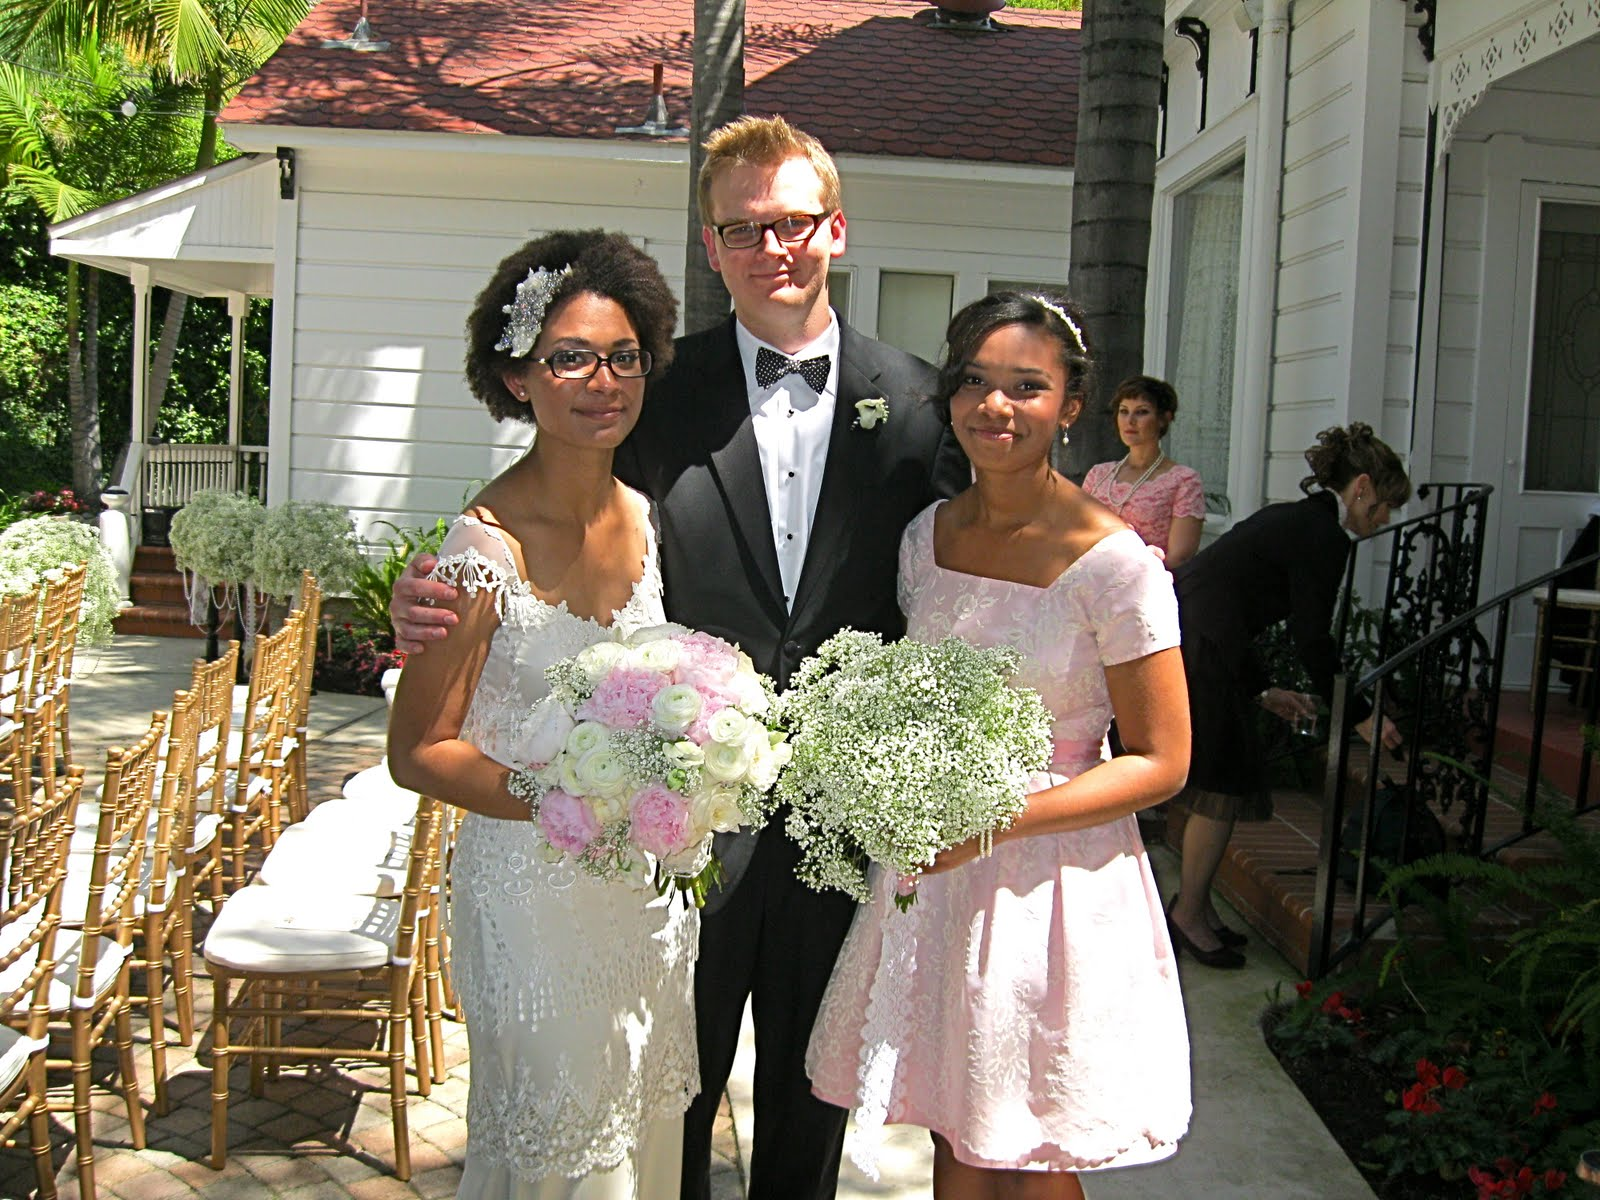 7f832e42a021 For their wedding, we lined the aisle with big, giant, fluffy puffs of Baby's  Breath on black stands. We strung pearls through and around them and added  a ...